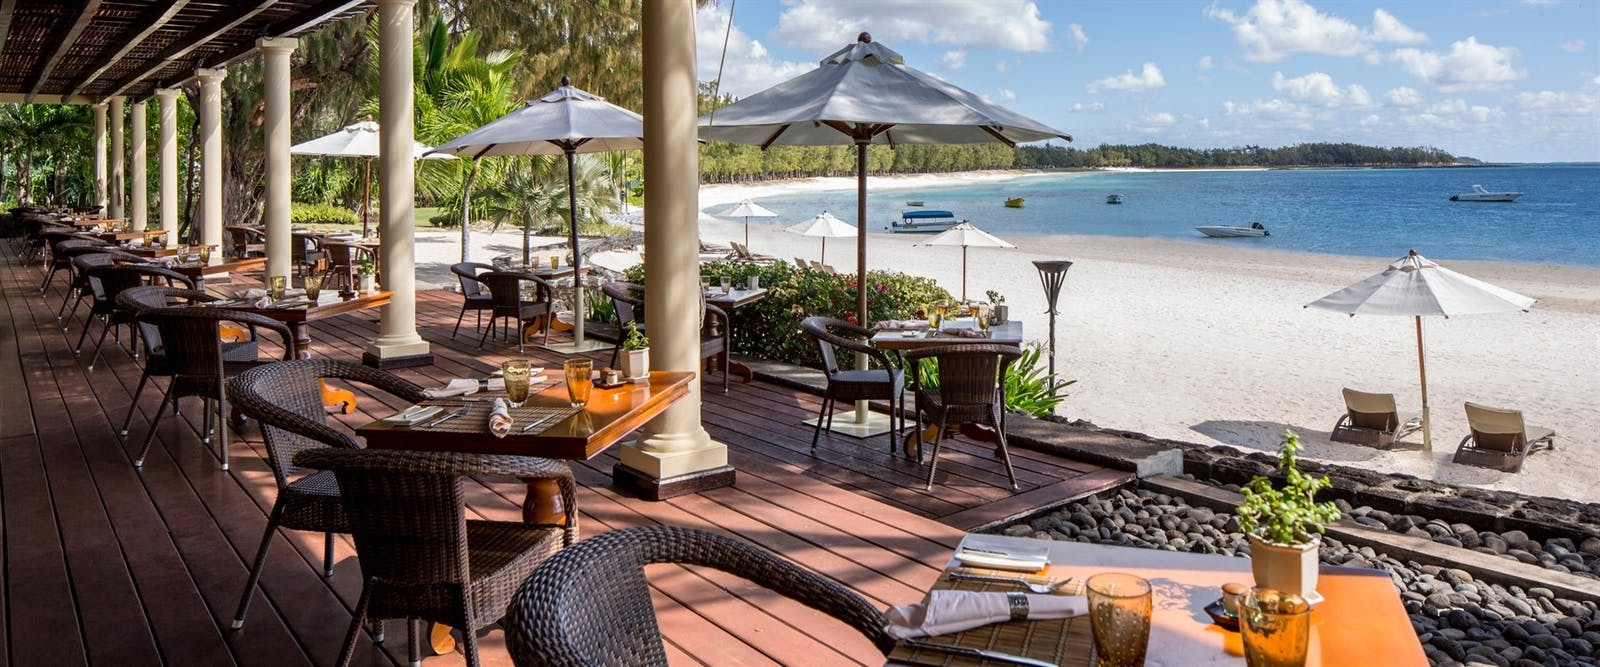 The Plantation Restaurant at The Residence Mauritius, Indian Ocean